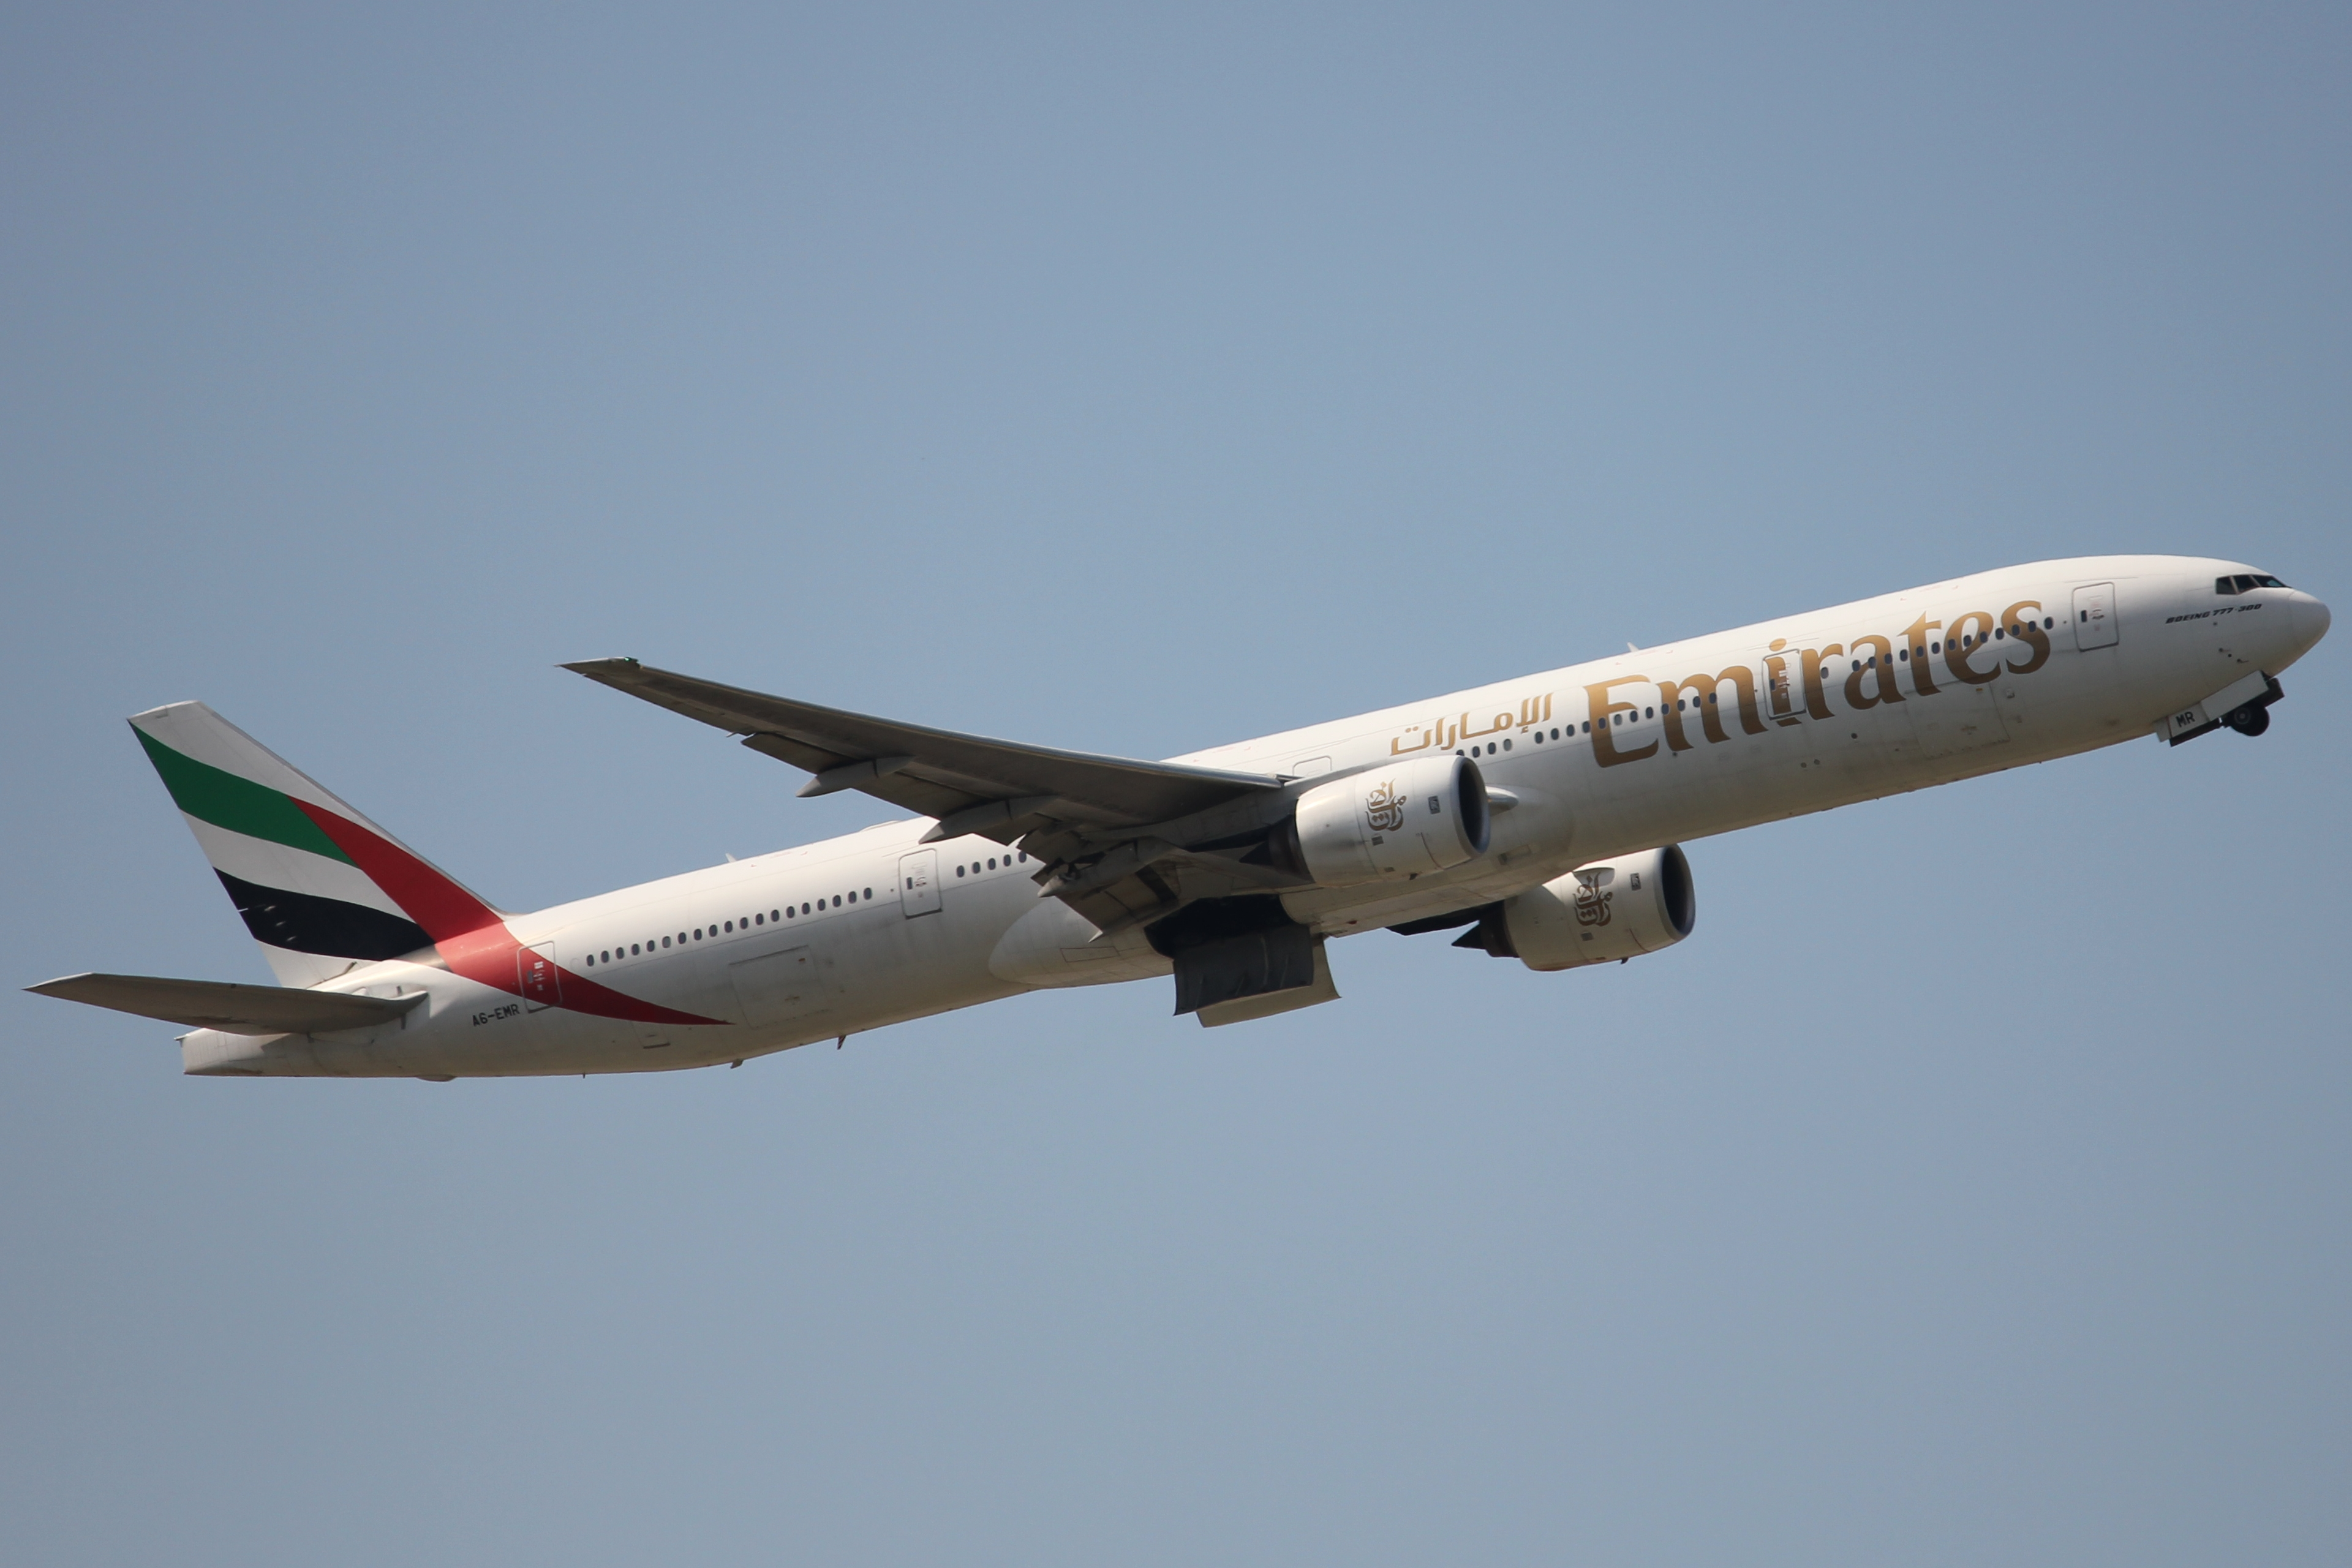 File:Emirates 773 A6-EMR.JPG